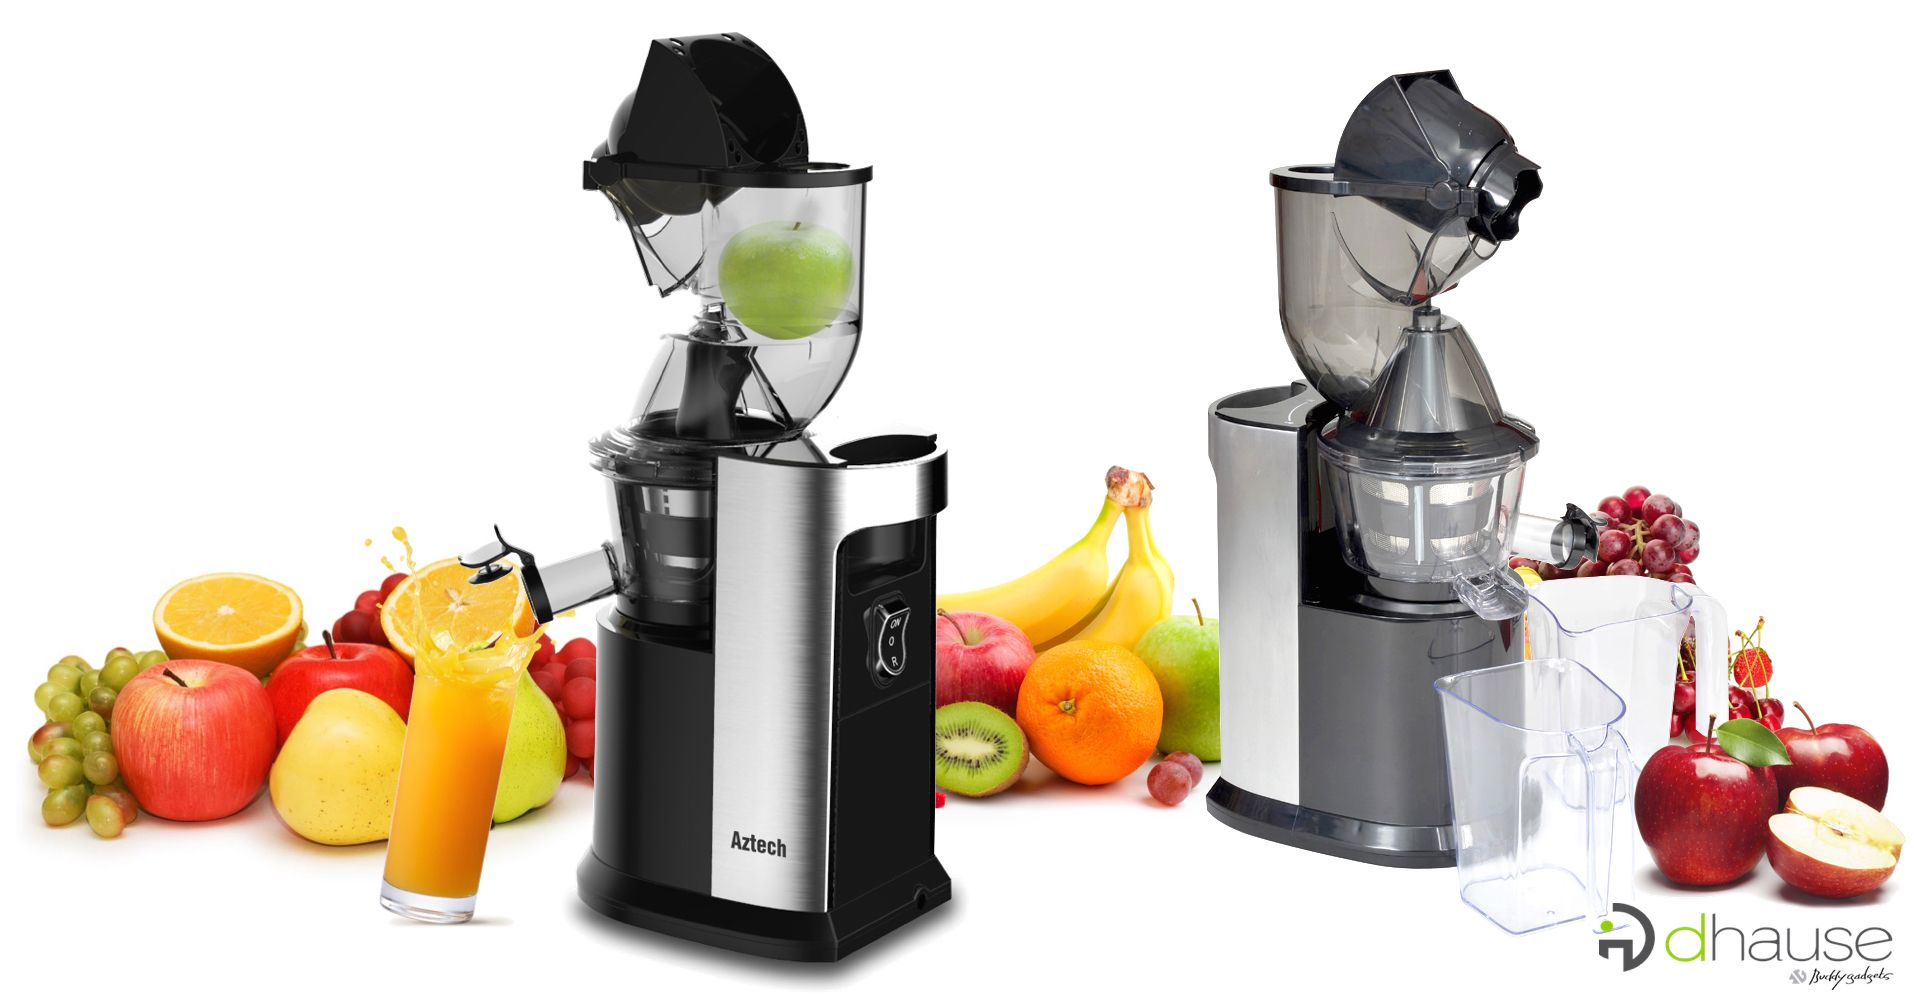 Bayers Whole Fruit Slow Juicer Sj 25 Review : Slow Juicer. . Produc Images. . Aimox Slow Juicer. Skg New Generation Slow Juicers Solve One Of ...